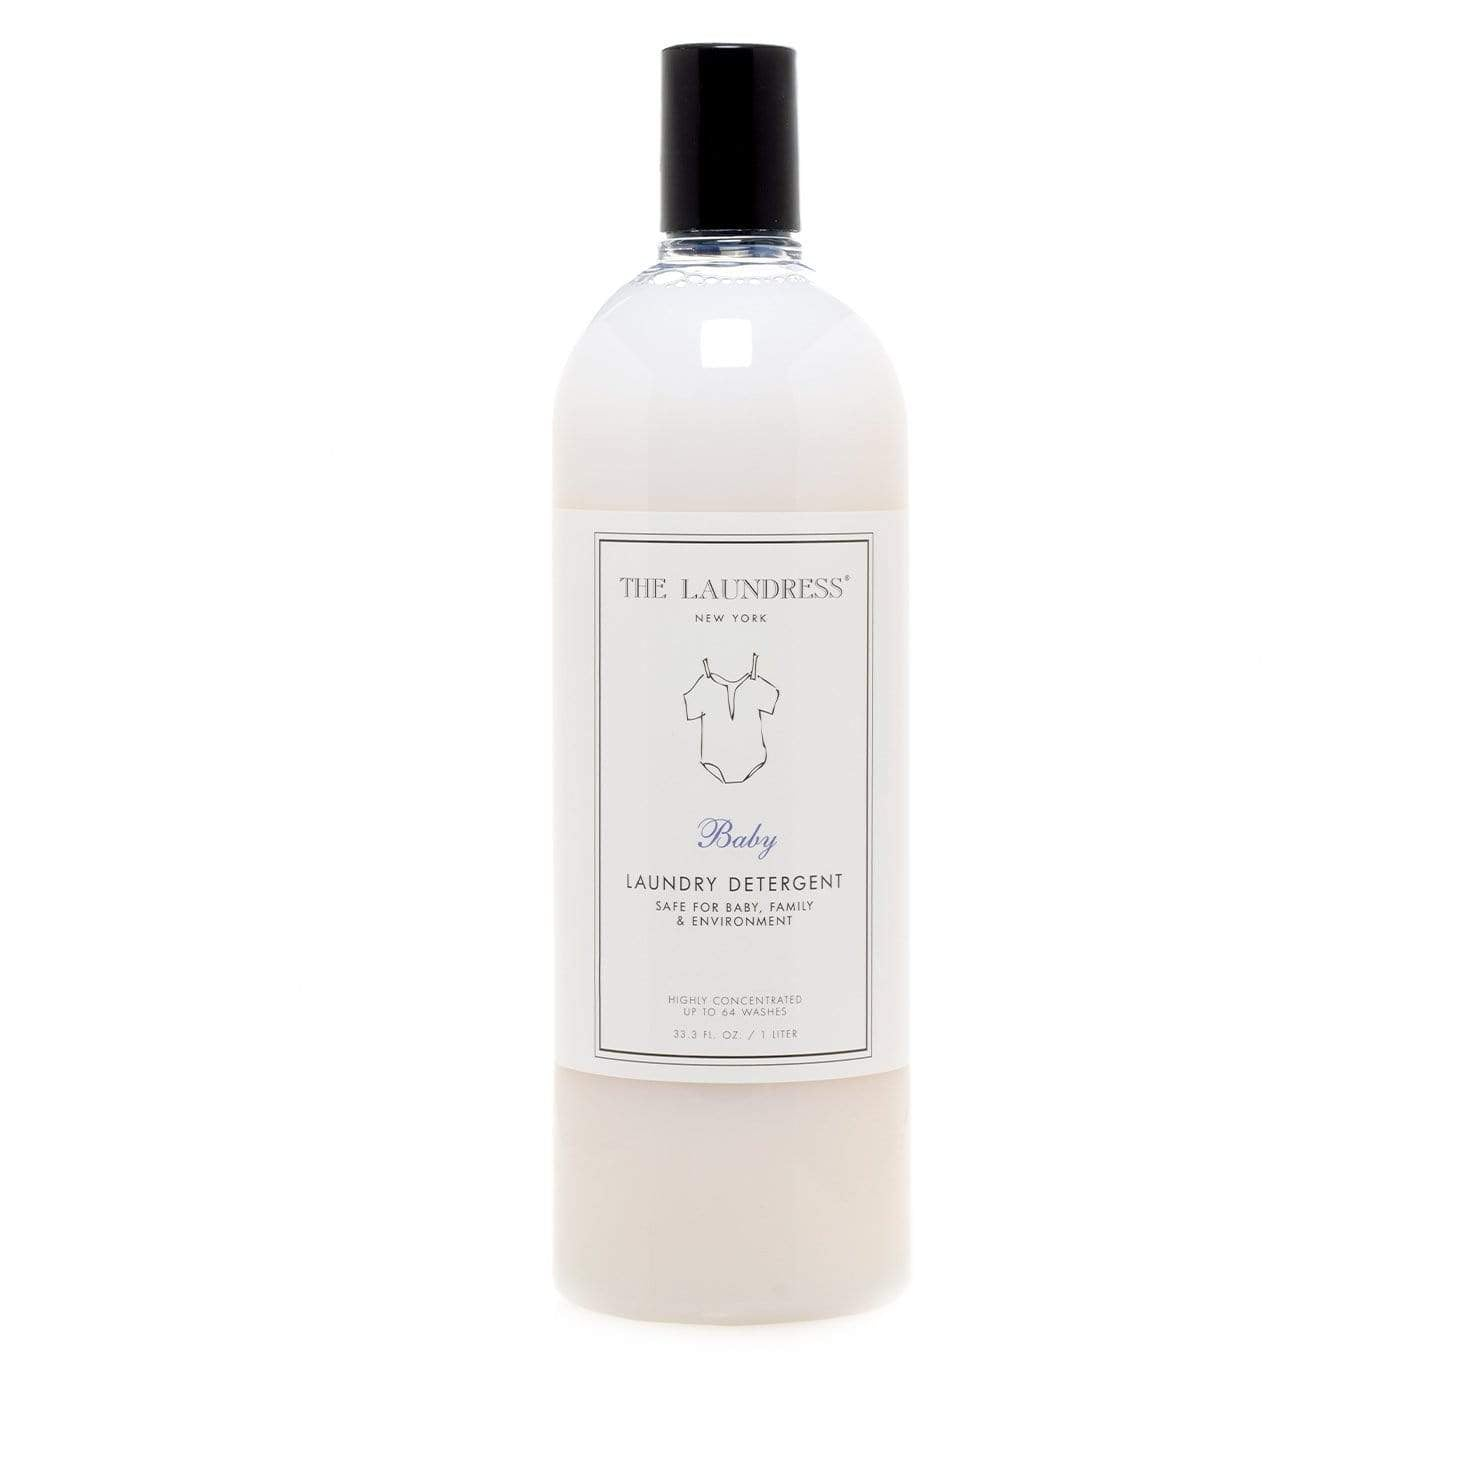 The Laundress Baby Detergent - 1 Litre